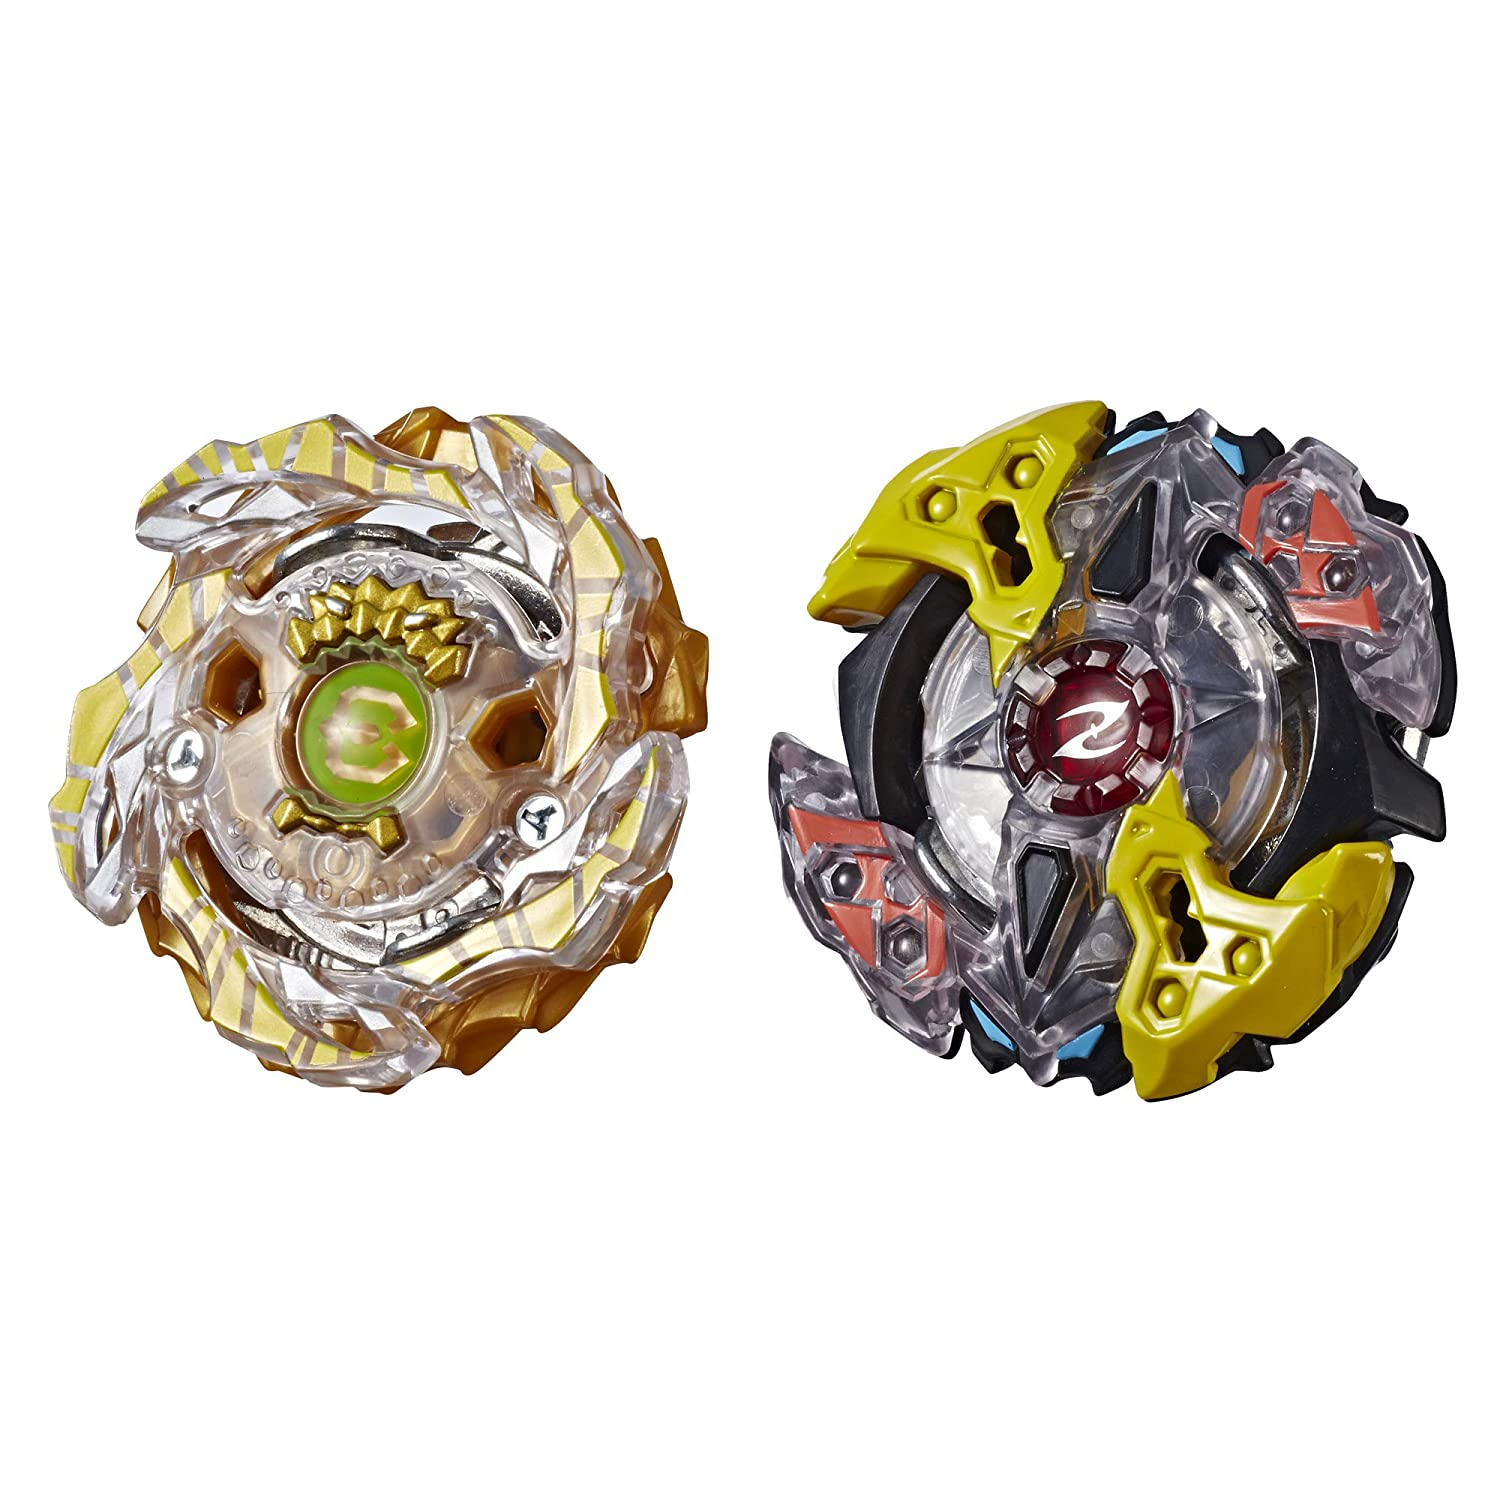 BEYBLADE Burst Turbo Slingshock Dual Pack Galaxy Zeutron Z4, Gold-X BETROMOTH B4, Multicolor